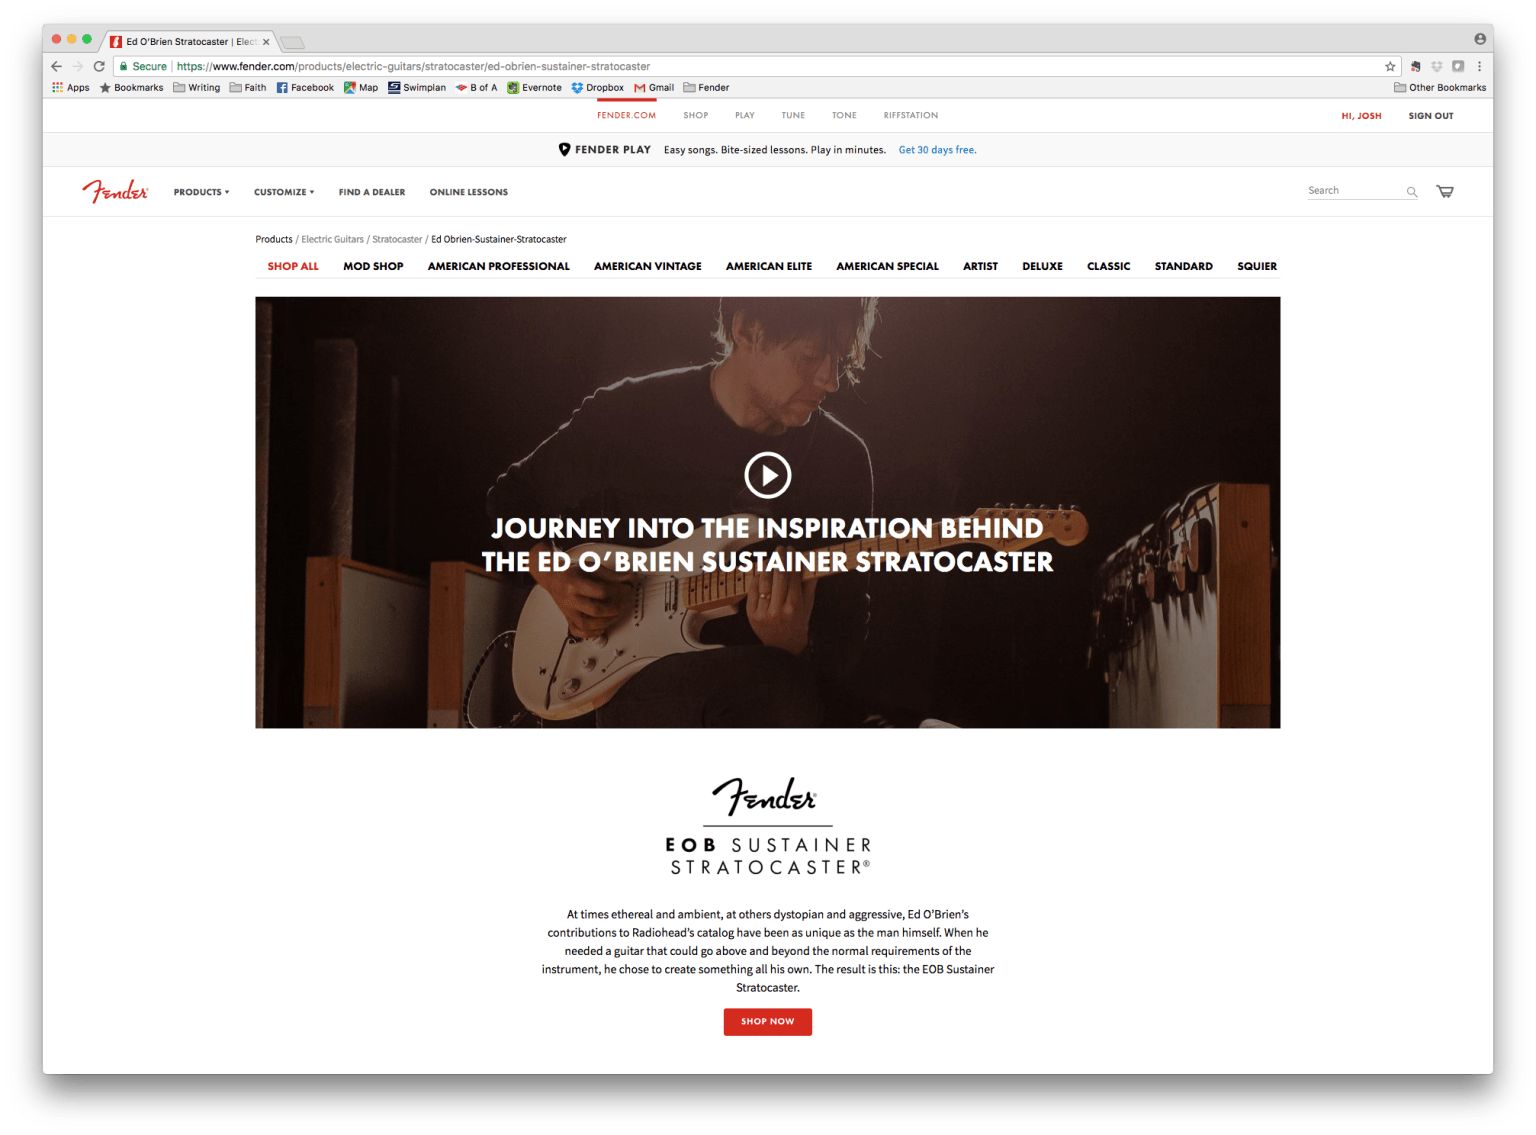 Fender Digital Campaigns